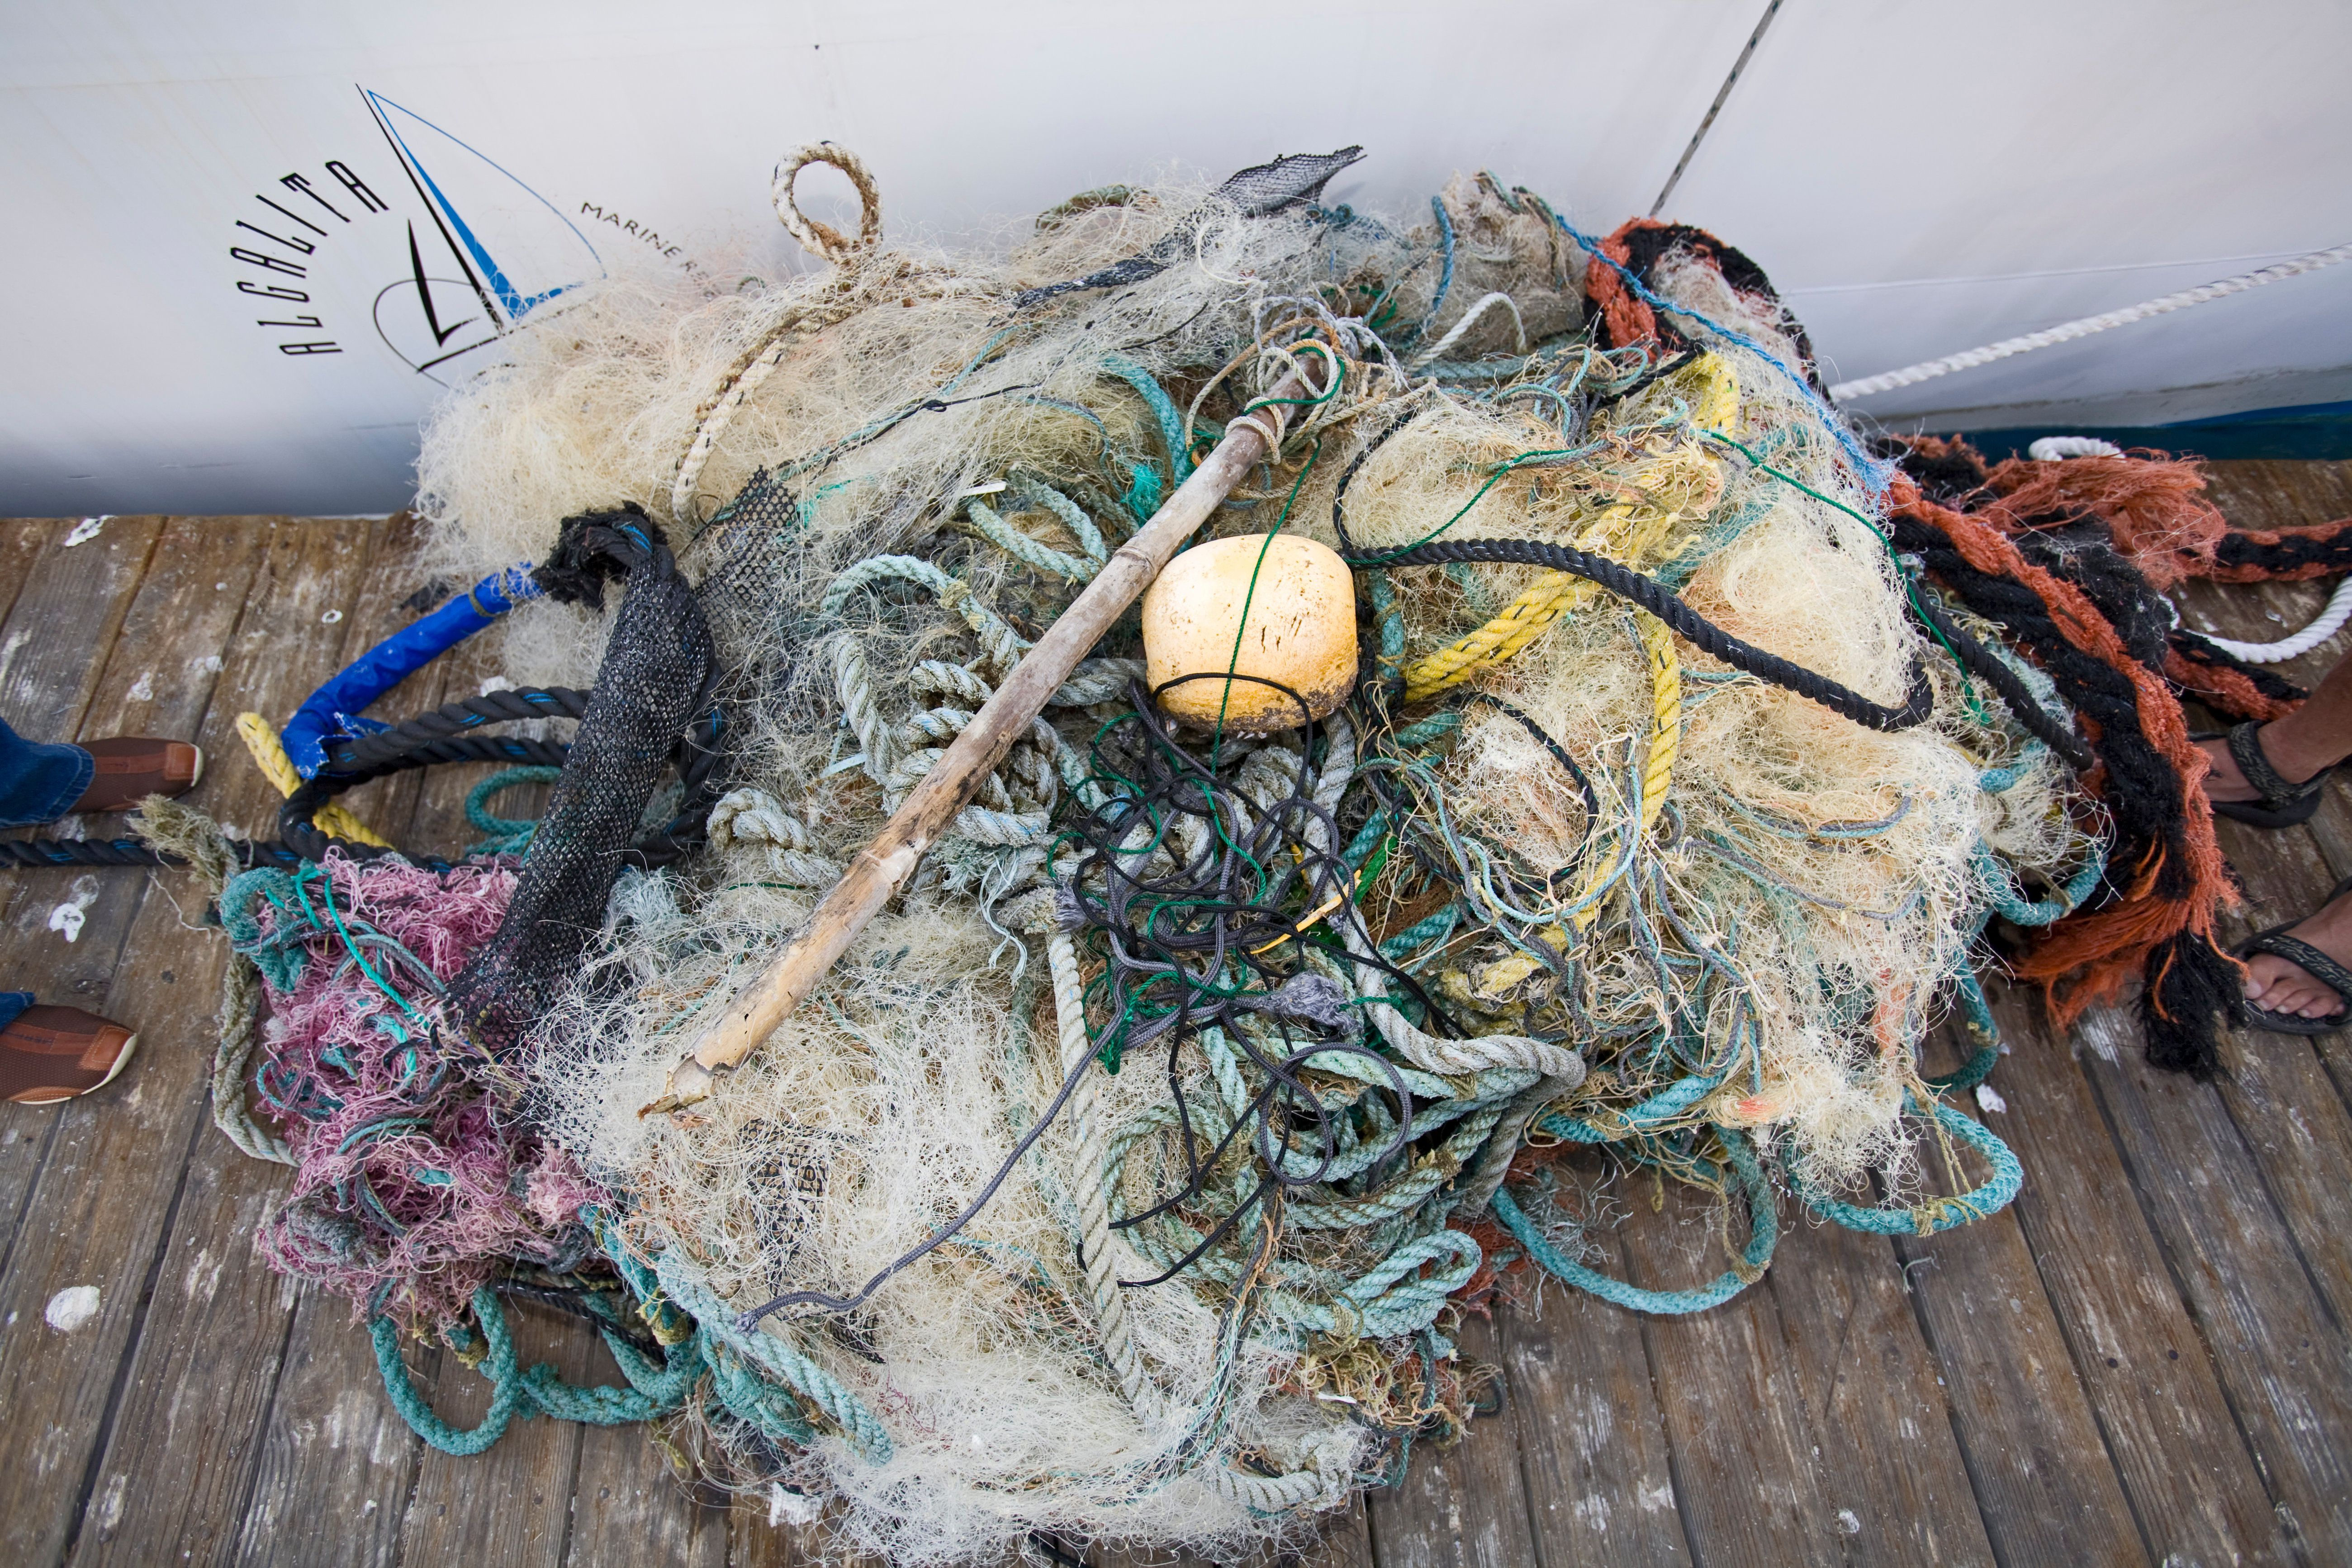 Trash collected from the Great Pacific Garbage Patch.